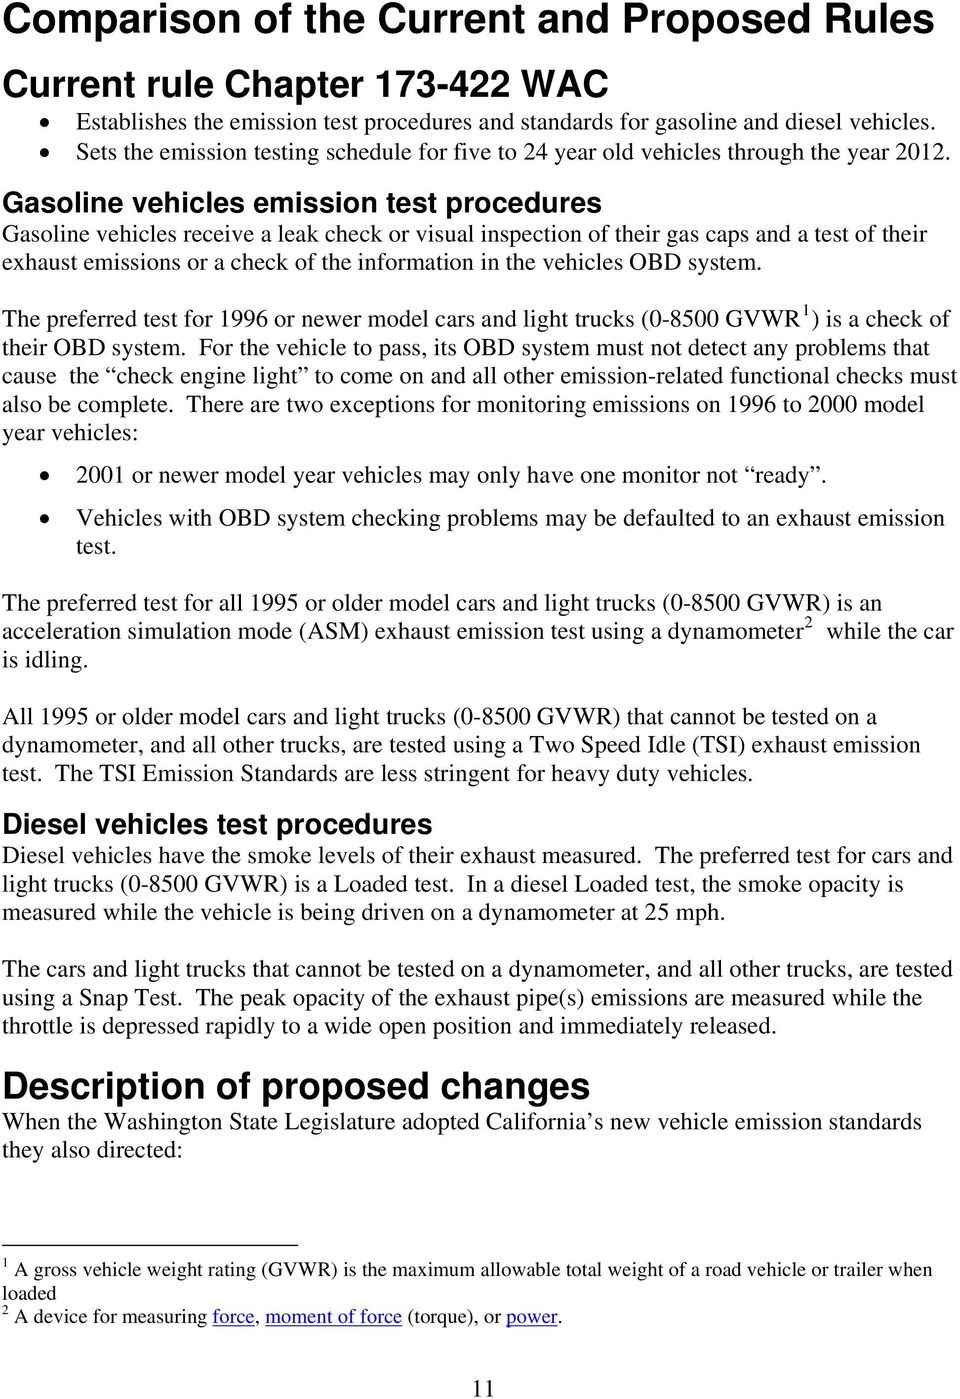 Gasoline vehicles emission test procedures Gasoline vehicles receive a leak check or visual inspection of their gas caps and a test of their exhaust emissions or a check of the information in the